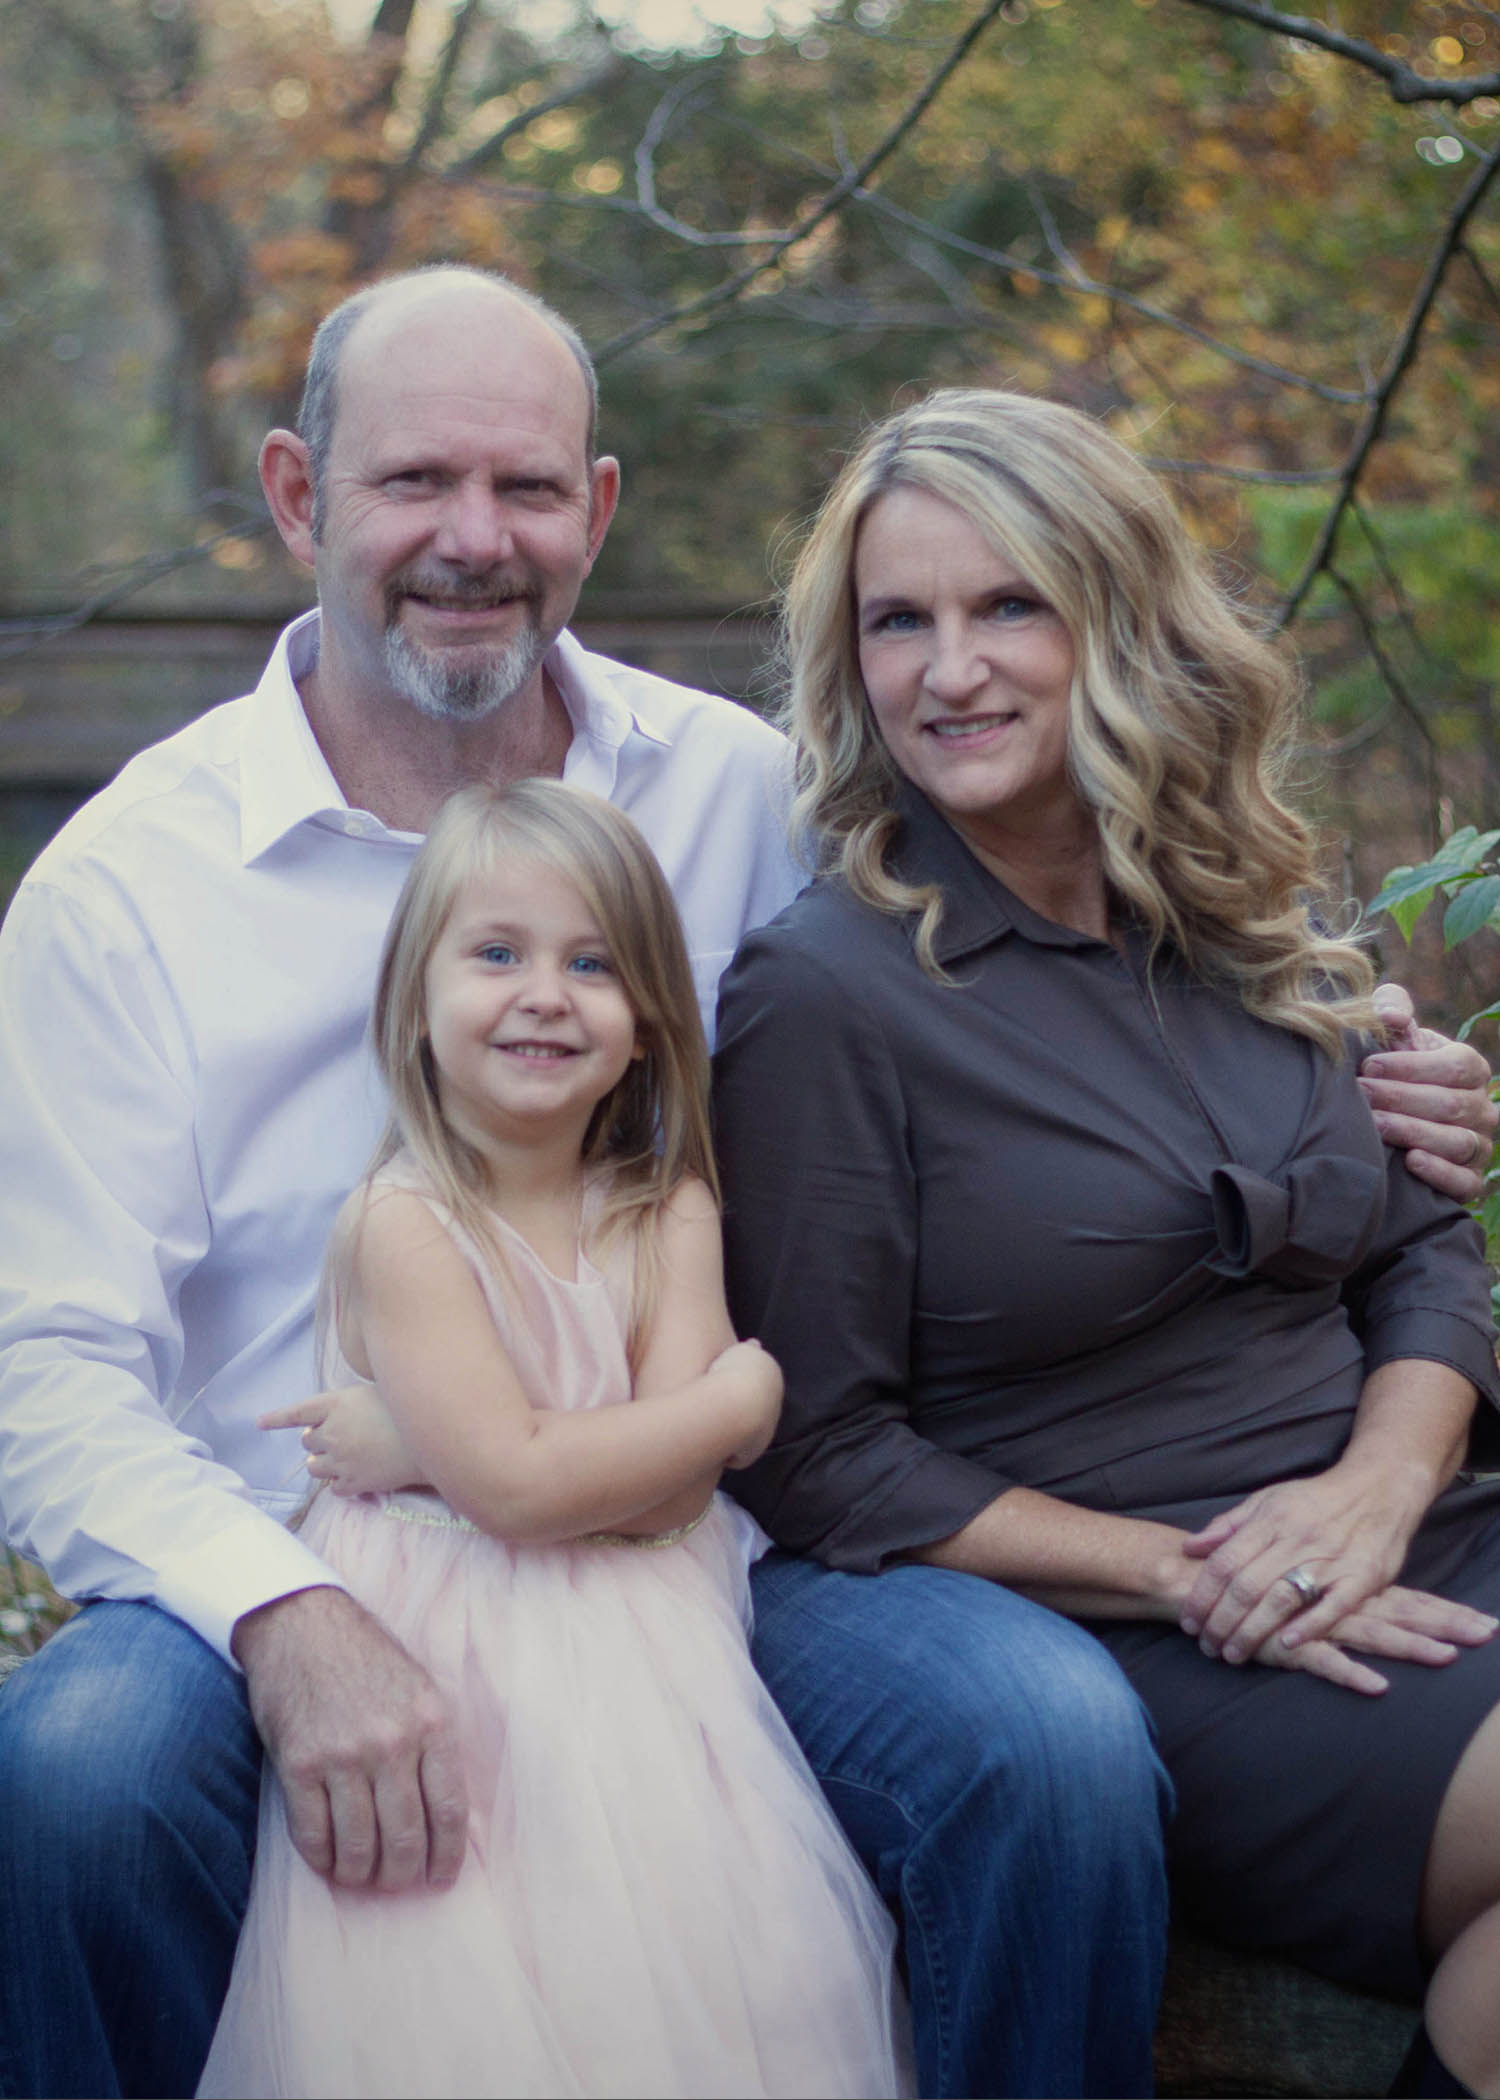 Family Portrait Sessions everyone can be excited about